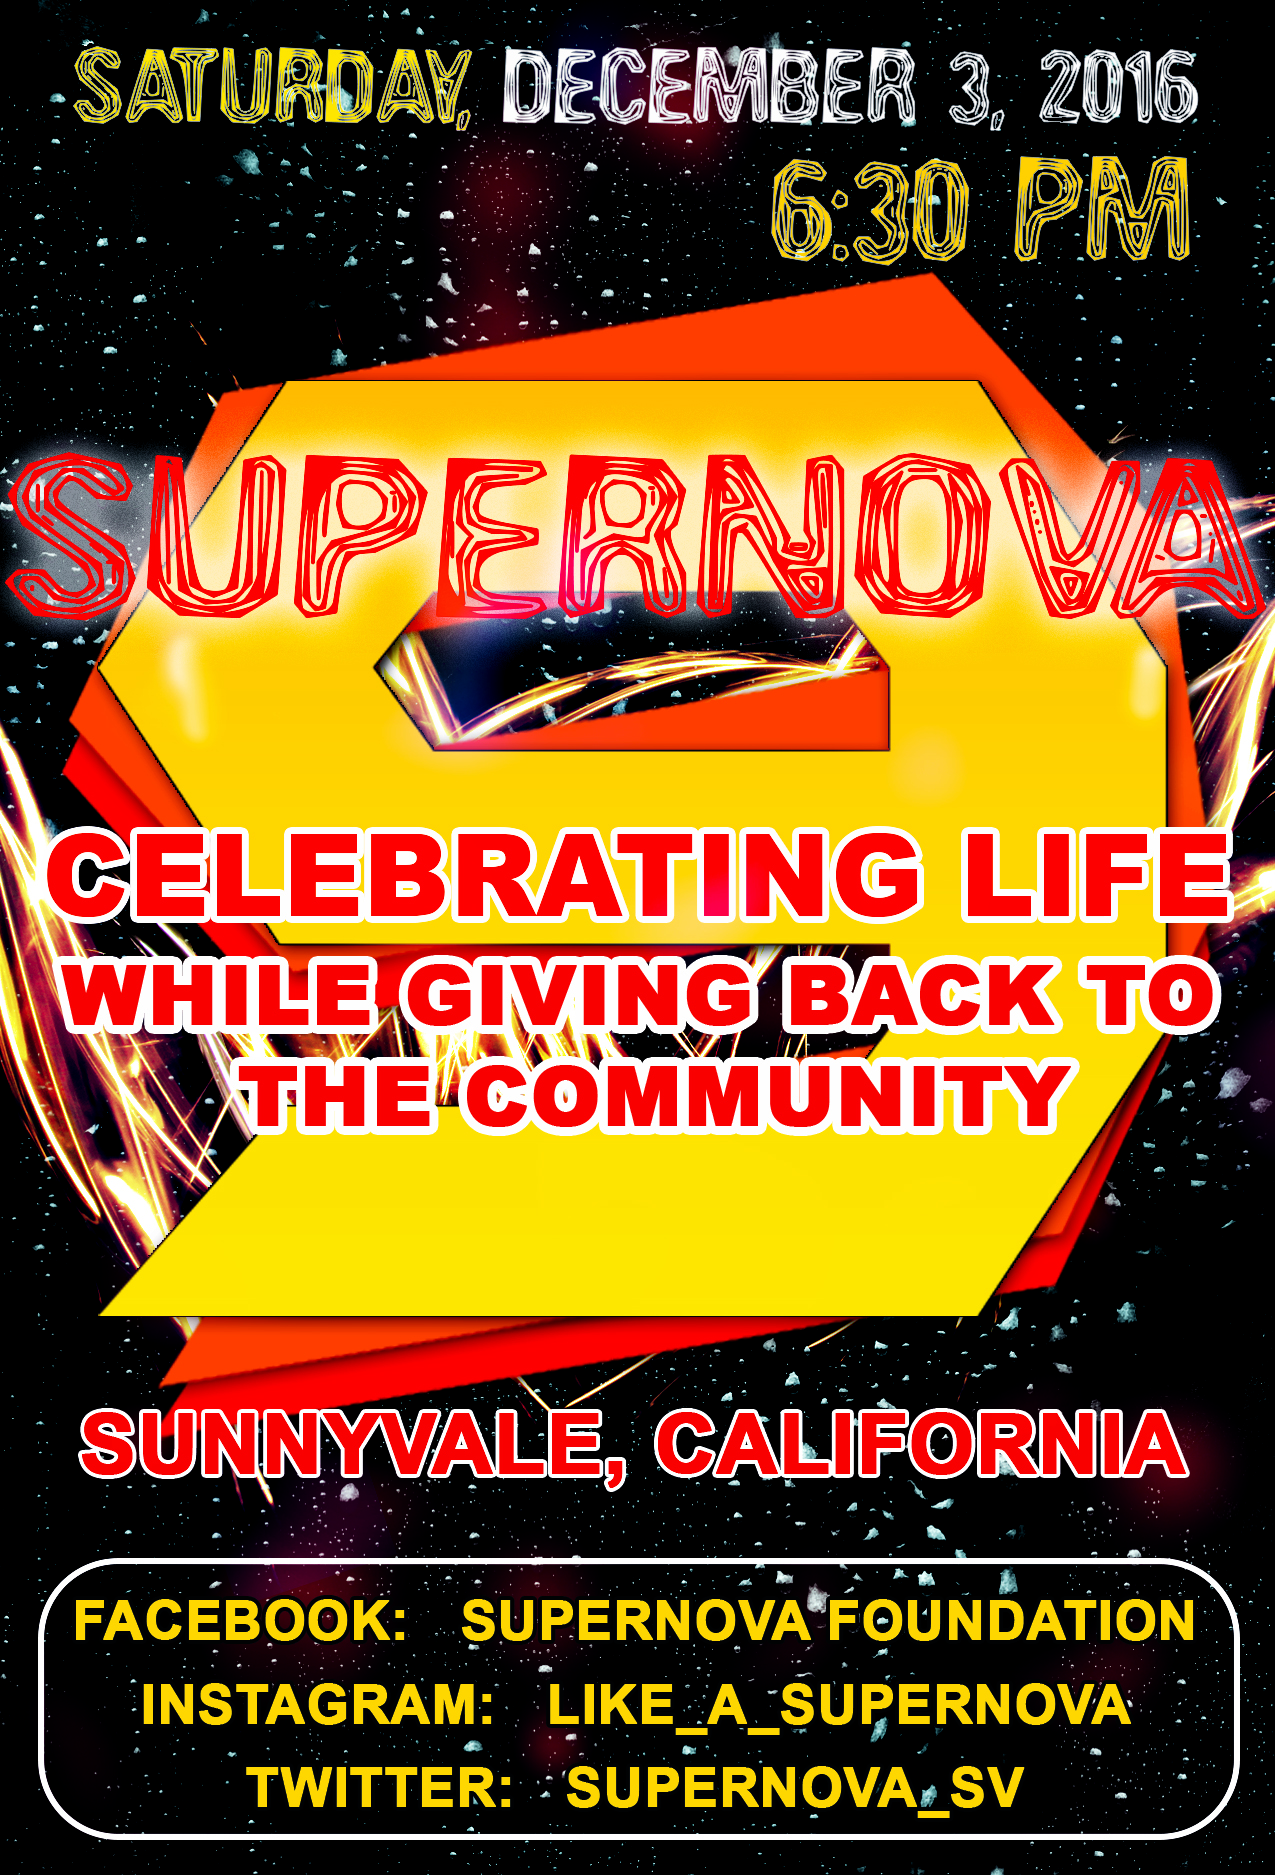 Supernova 9- Save The Date!!! Sunnyvale, California!